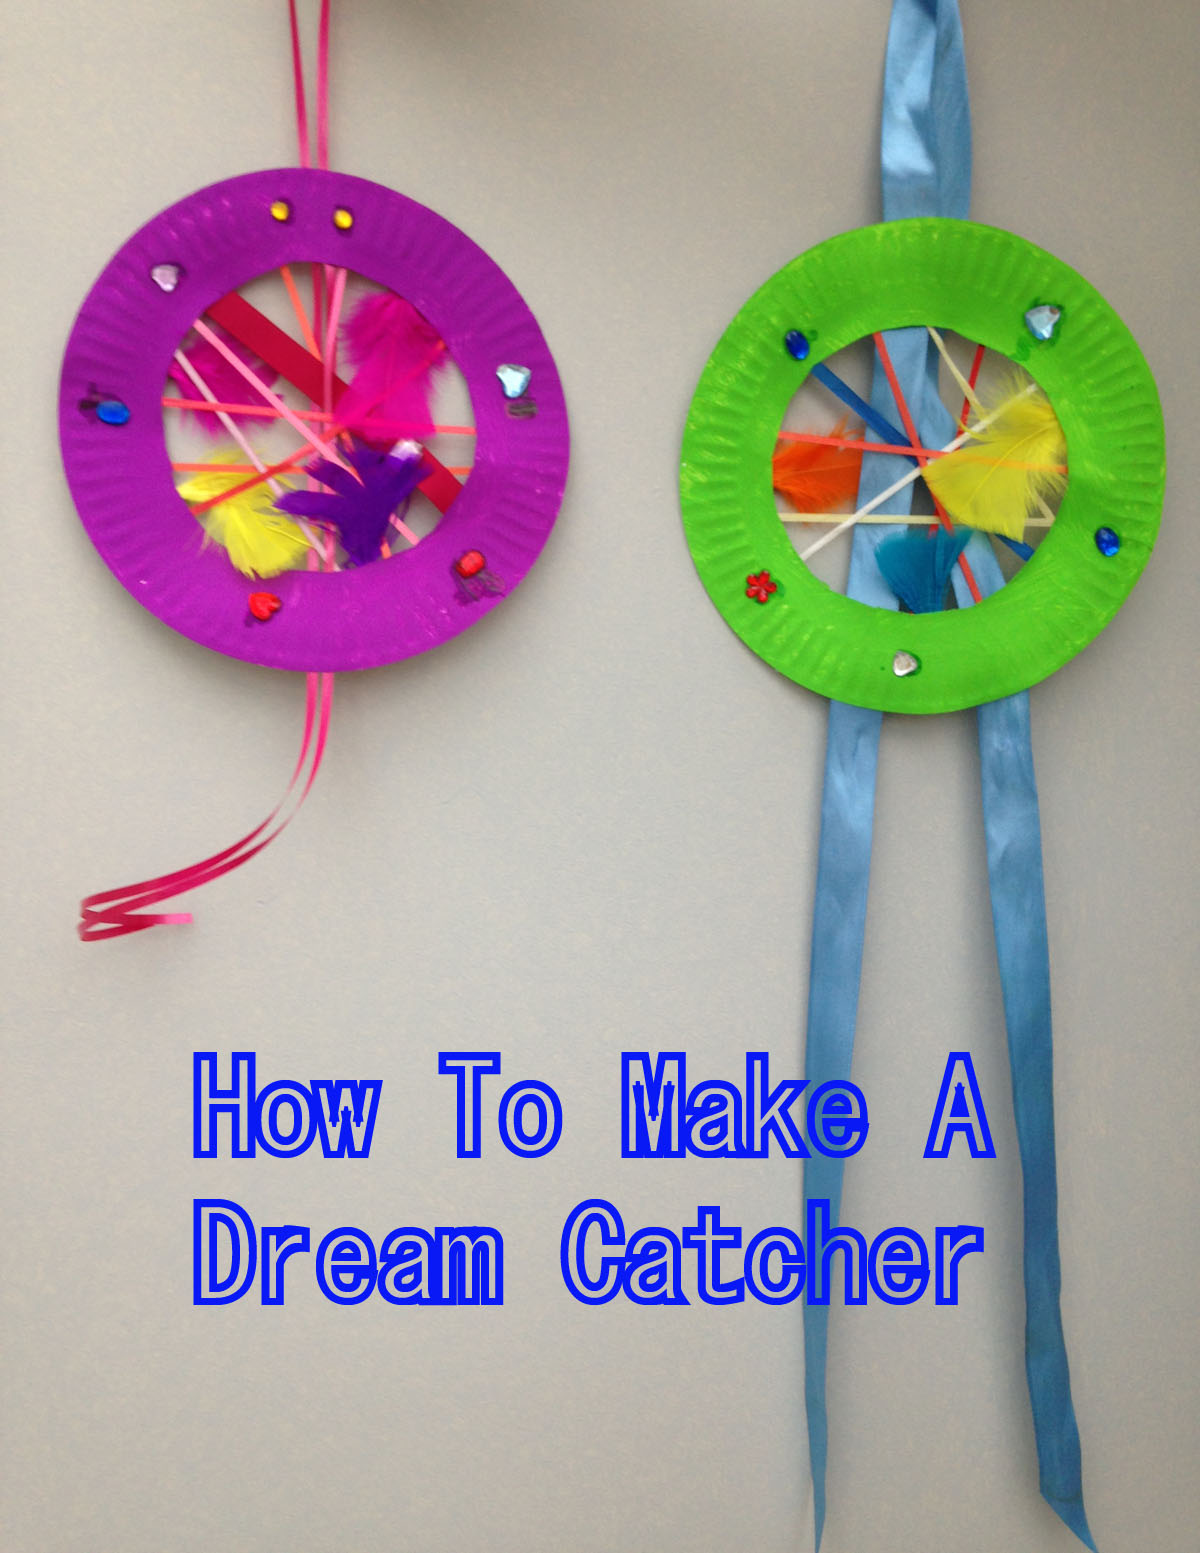 How to make a dream catcher jugglemum for Dream catchers how to make them